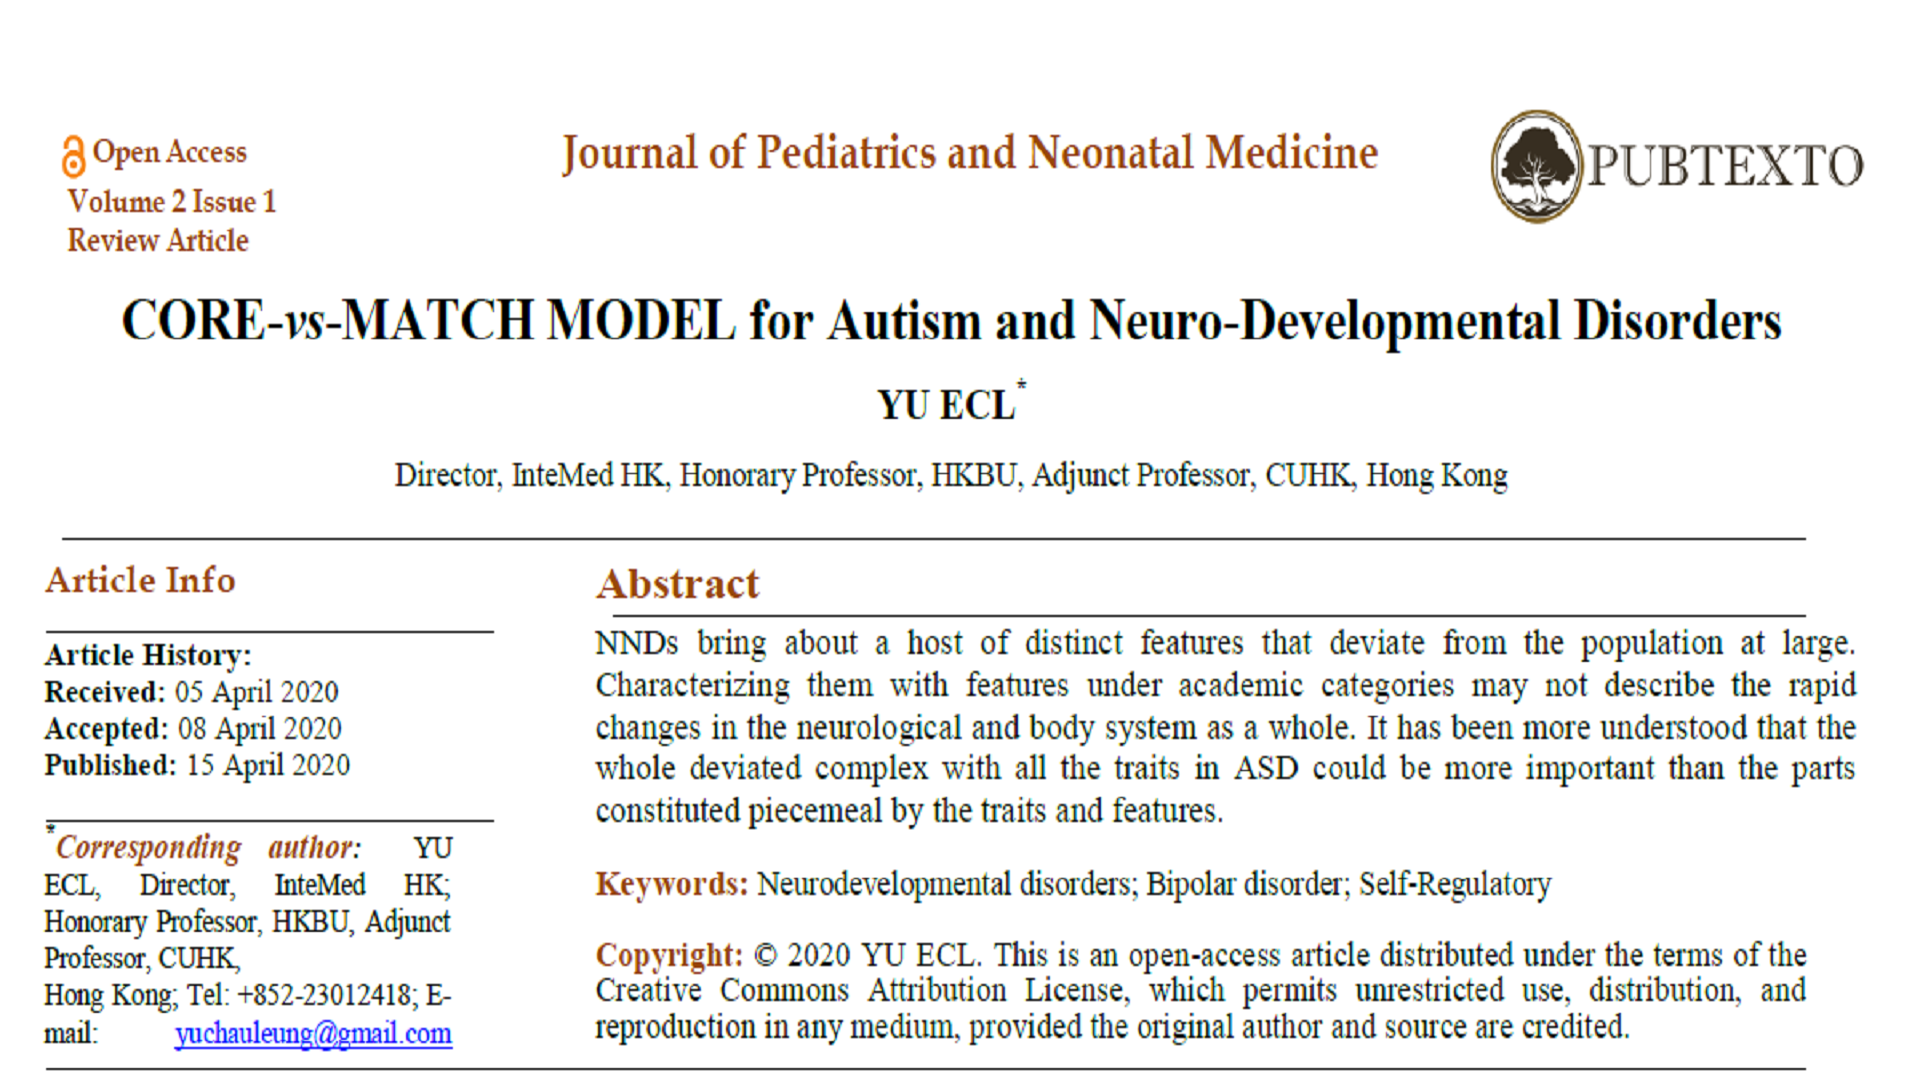 CORE-vs-MATCH MODEL for Autism and Neuro-Developmental Disorders